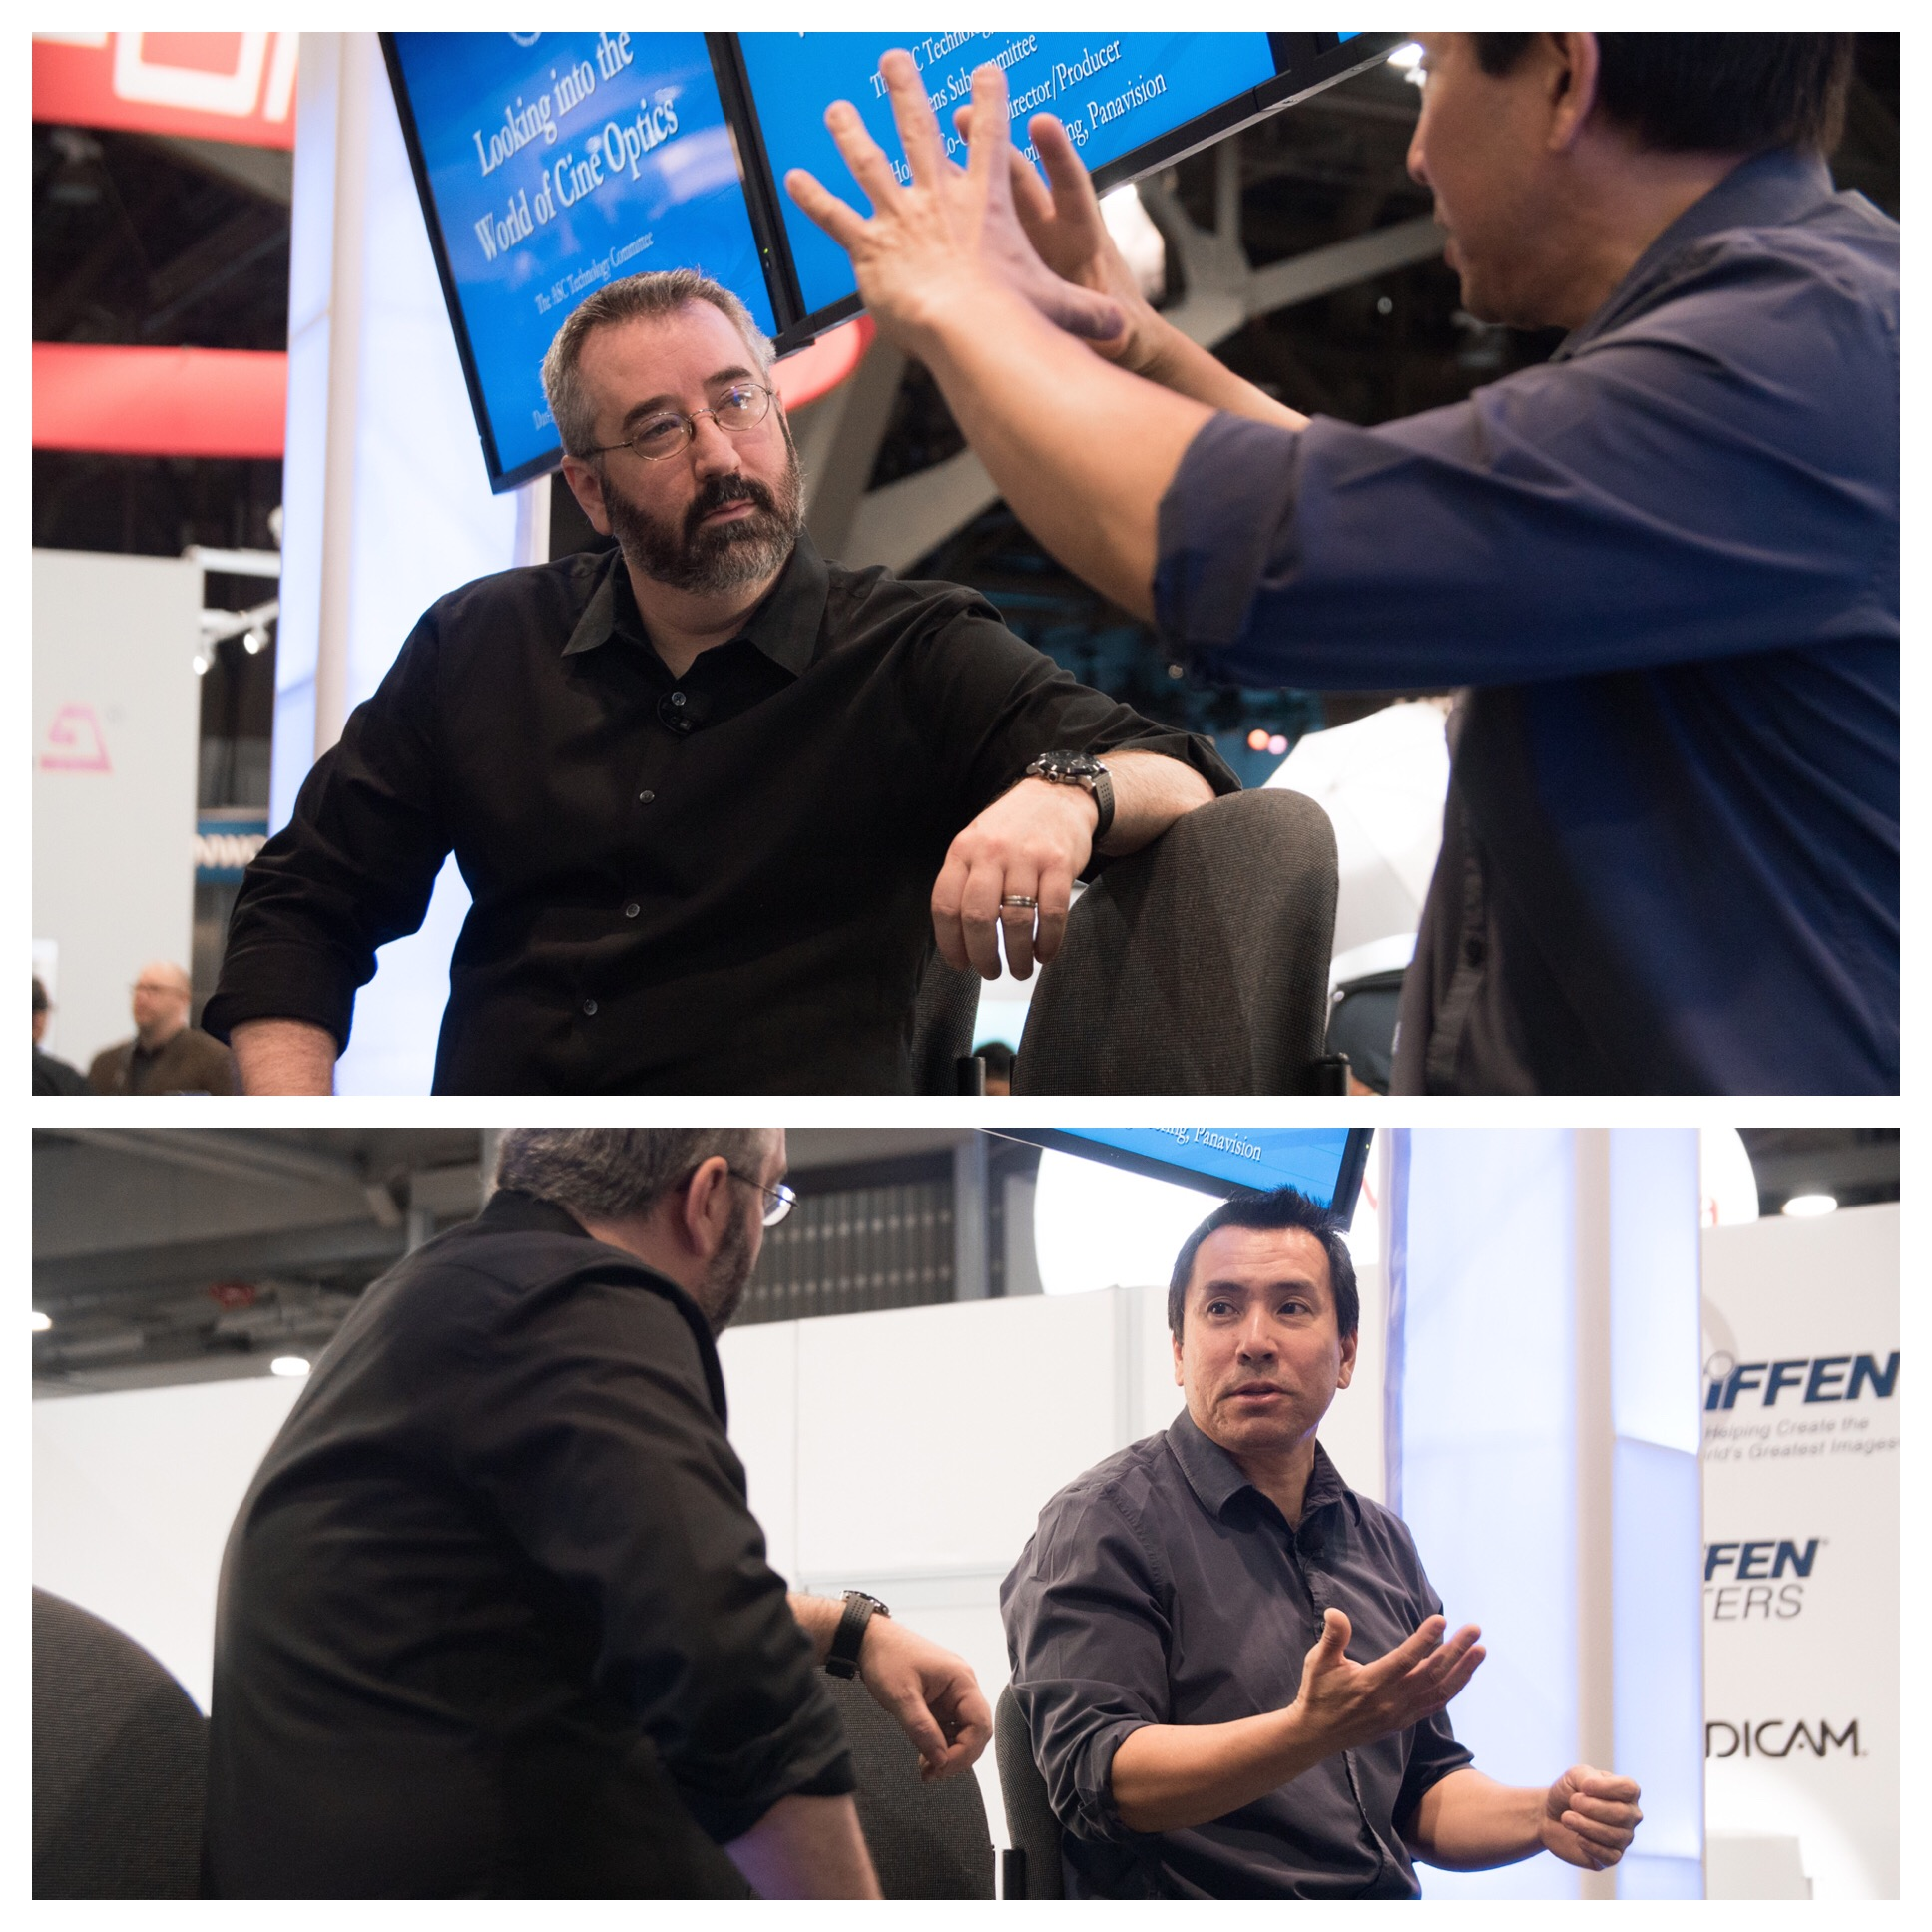 Holben and Vice President of Optical Engineering at Panavision Dan Sasaki discuss modern trends in optics at the National Association of Broadcasting Tiffen/ASC presentation.